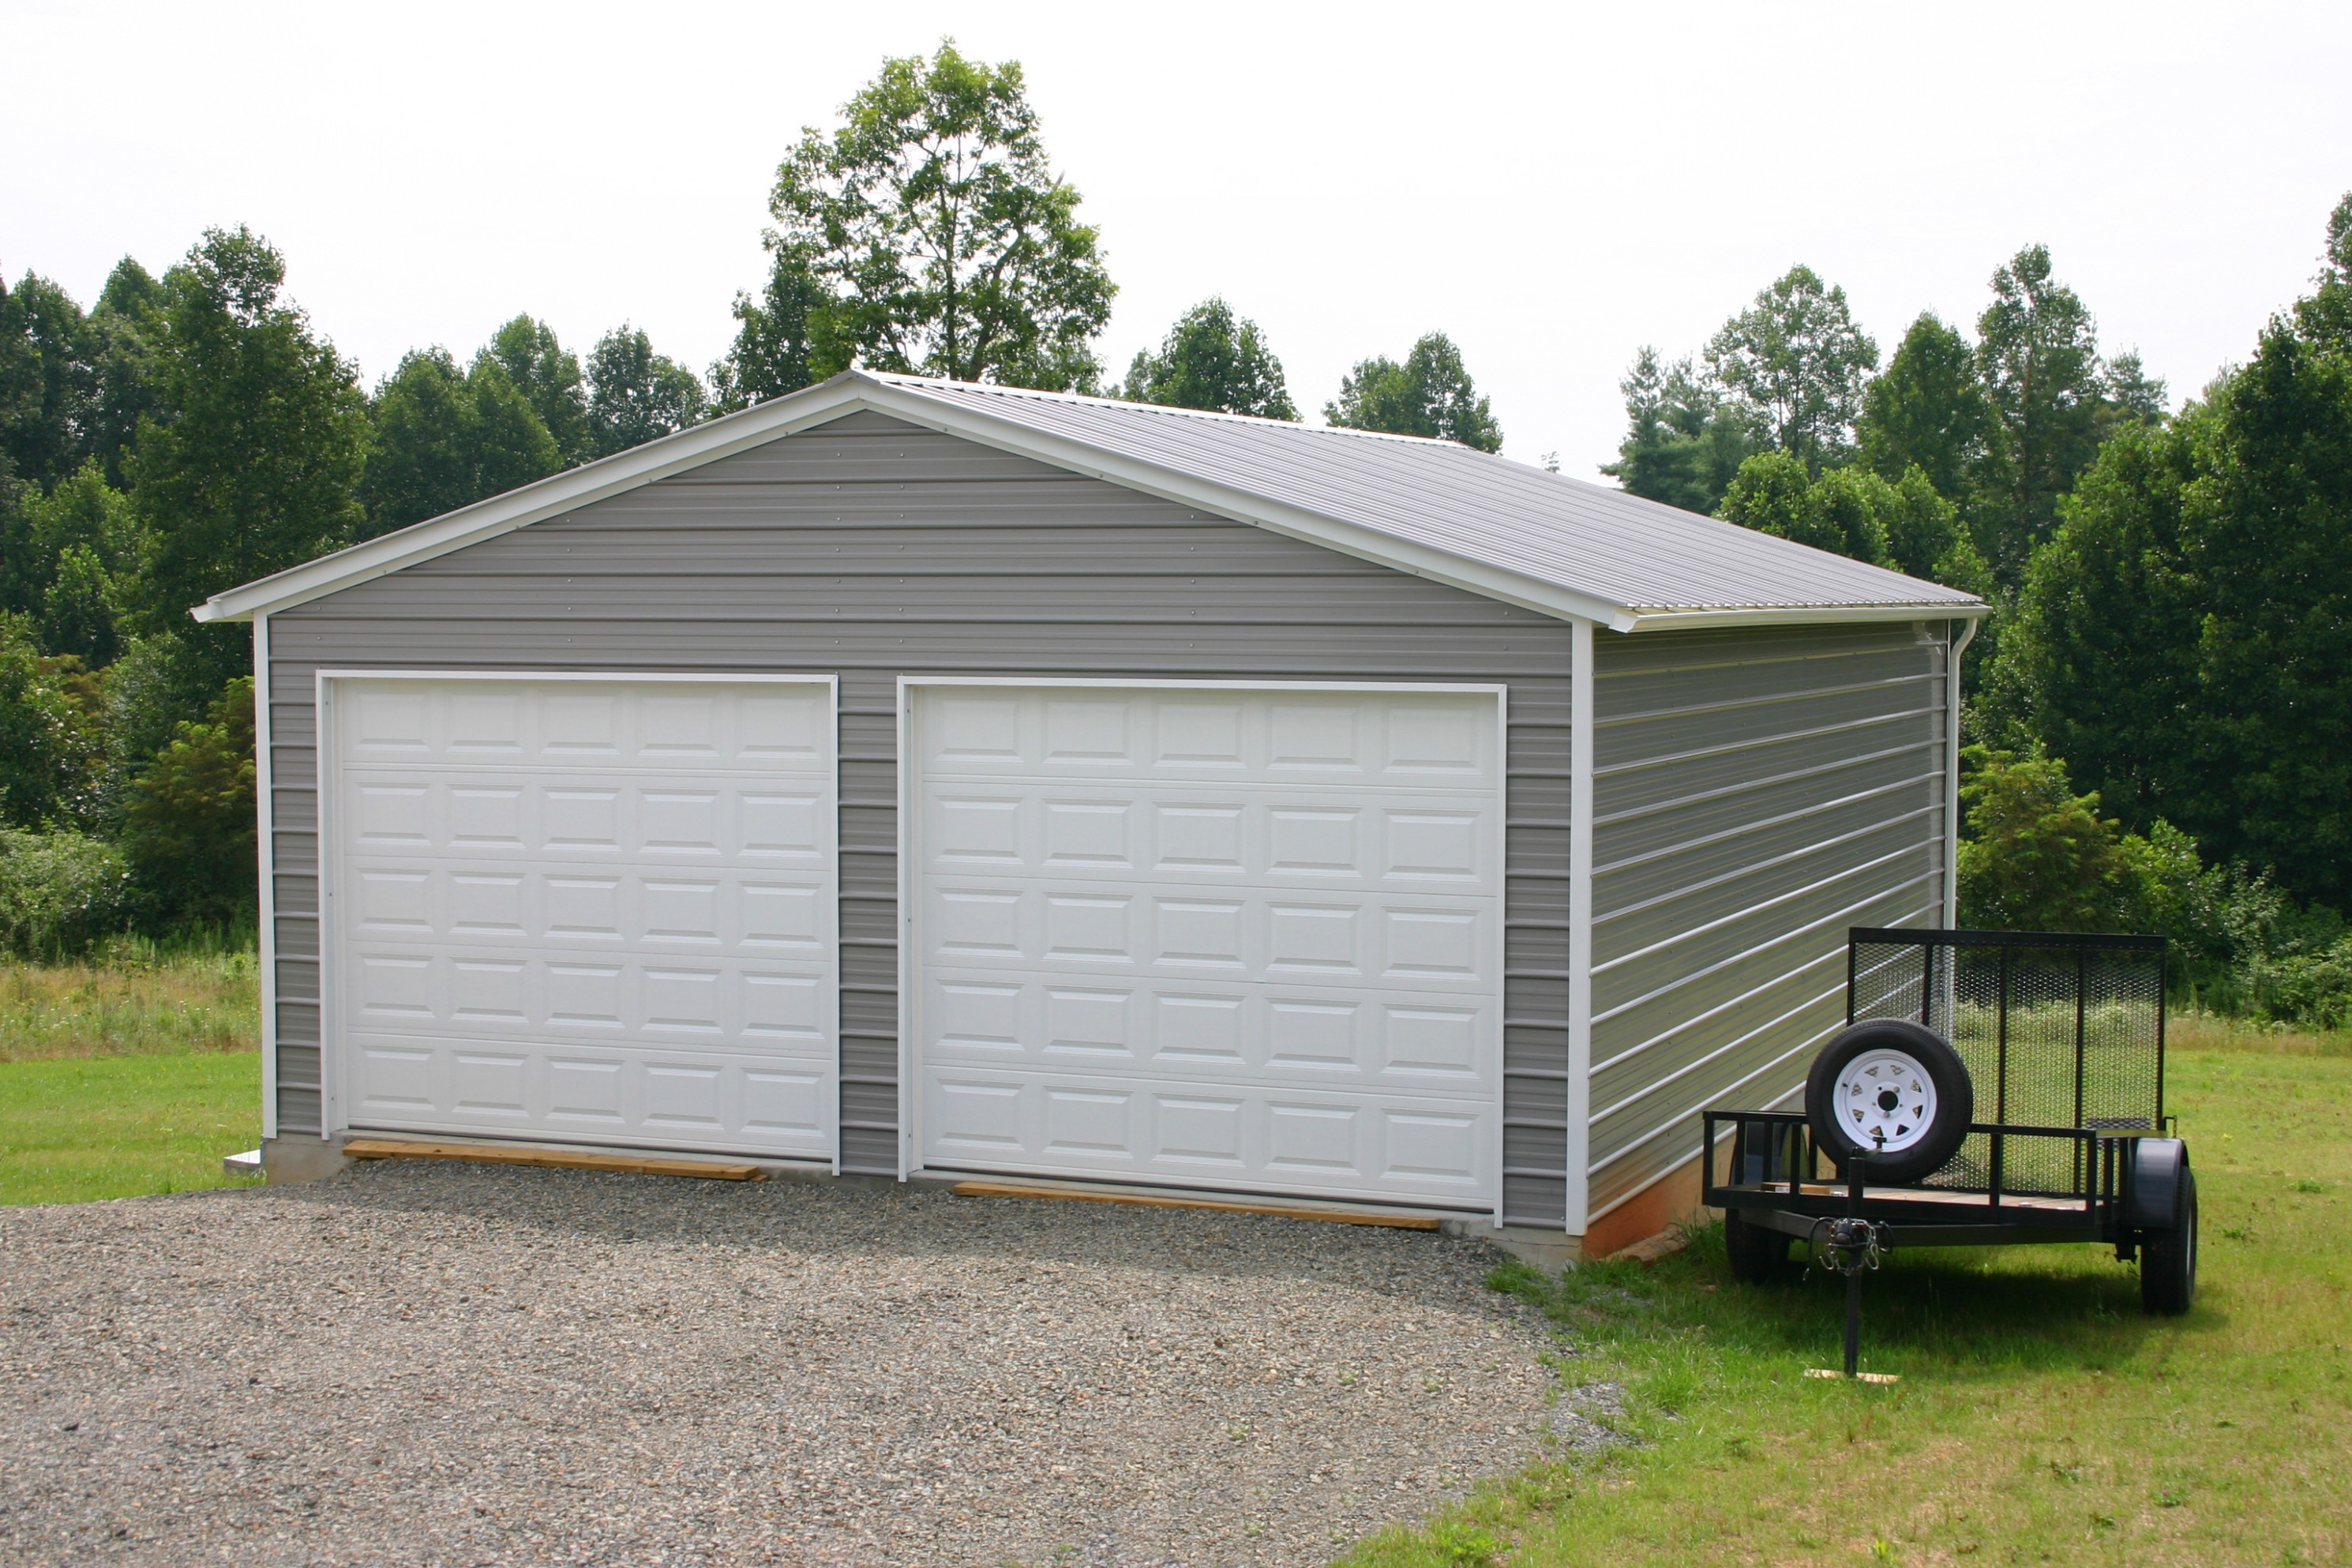 What You Know About Small Metal Carports For Sale And What You Don't Know About Small Metal Carports For Sale | small metal carports for sale